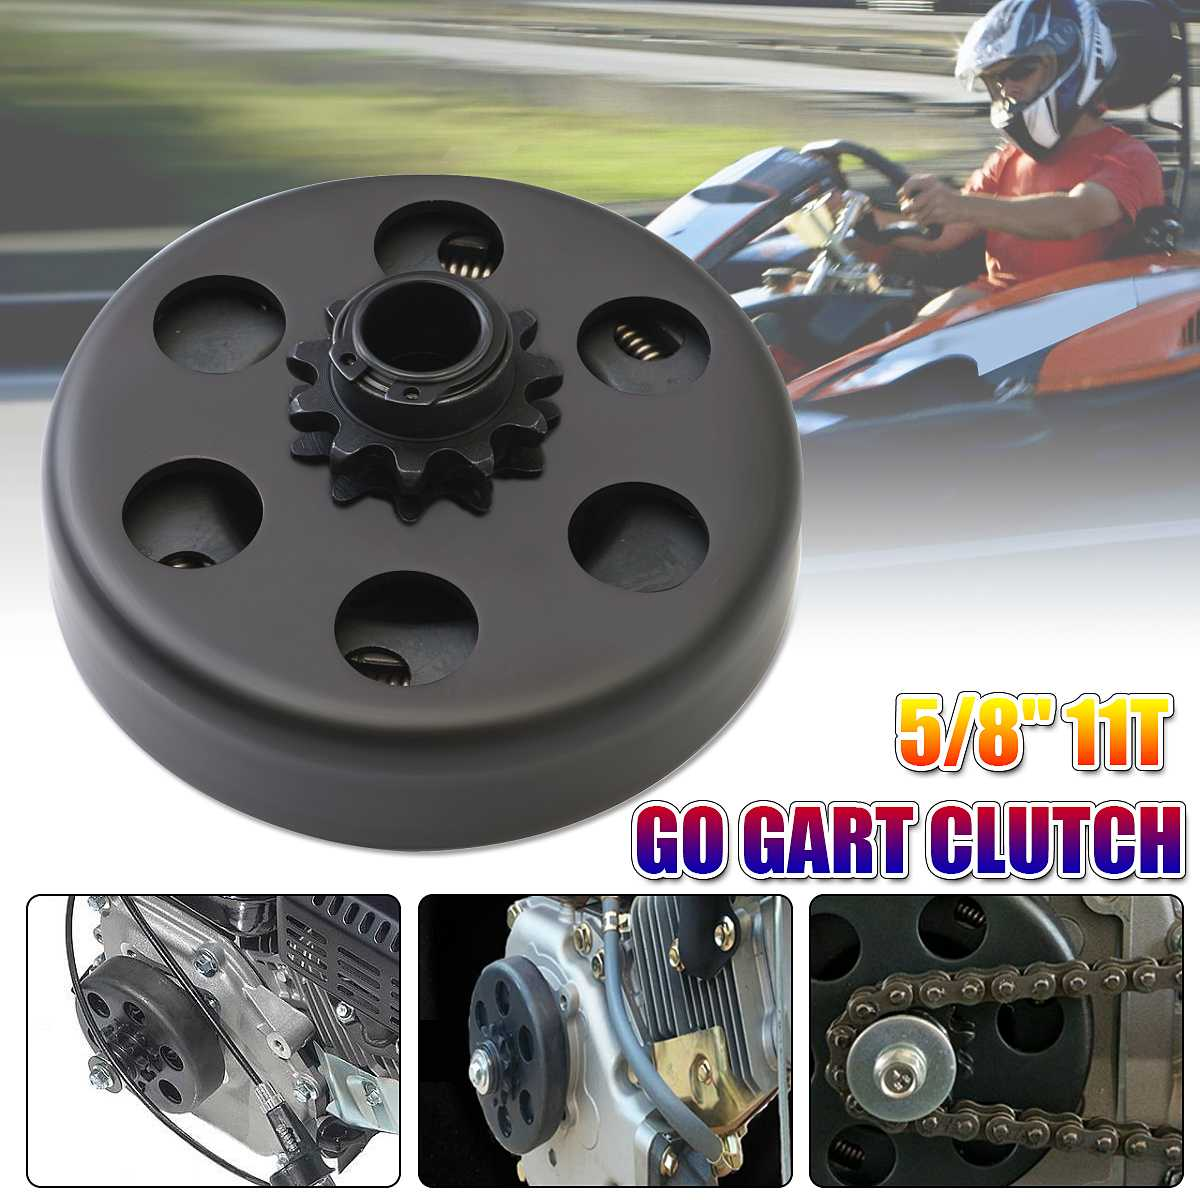 5/8'' Engine Clutch,Sprocket Centrifugal Clutch Sprocket 11T Bore Black For Gokart KDC Kart GX160 GX200 MAX80